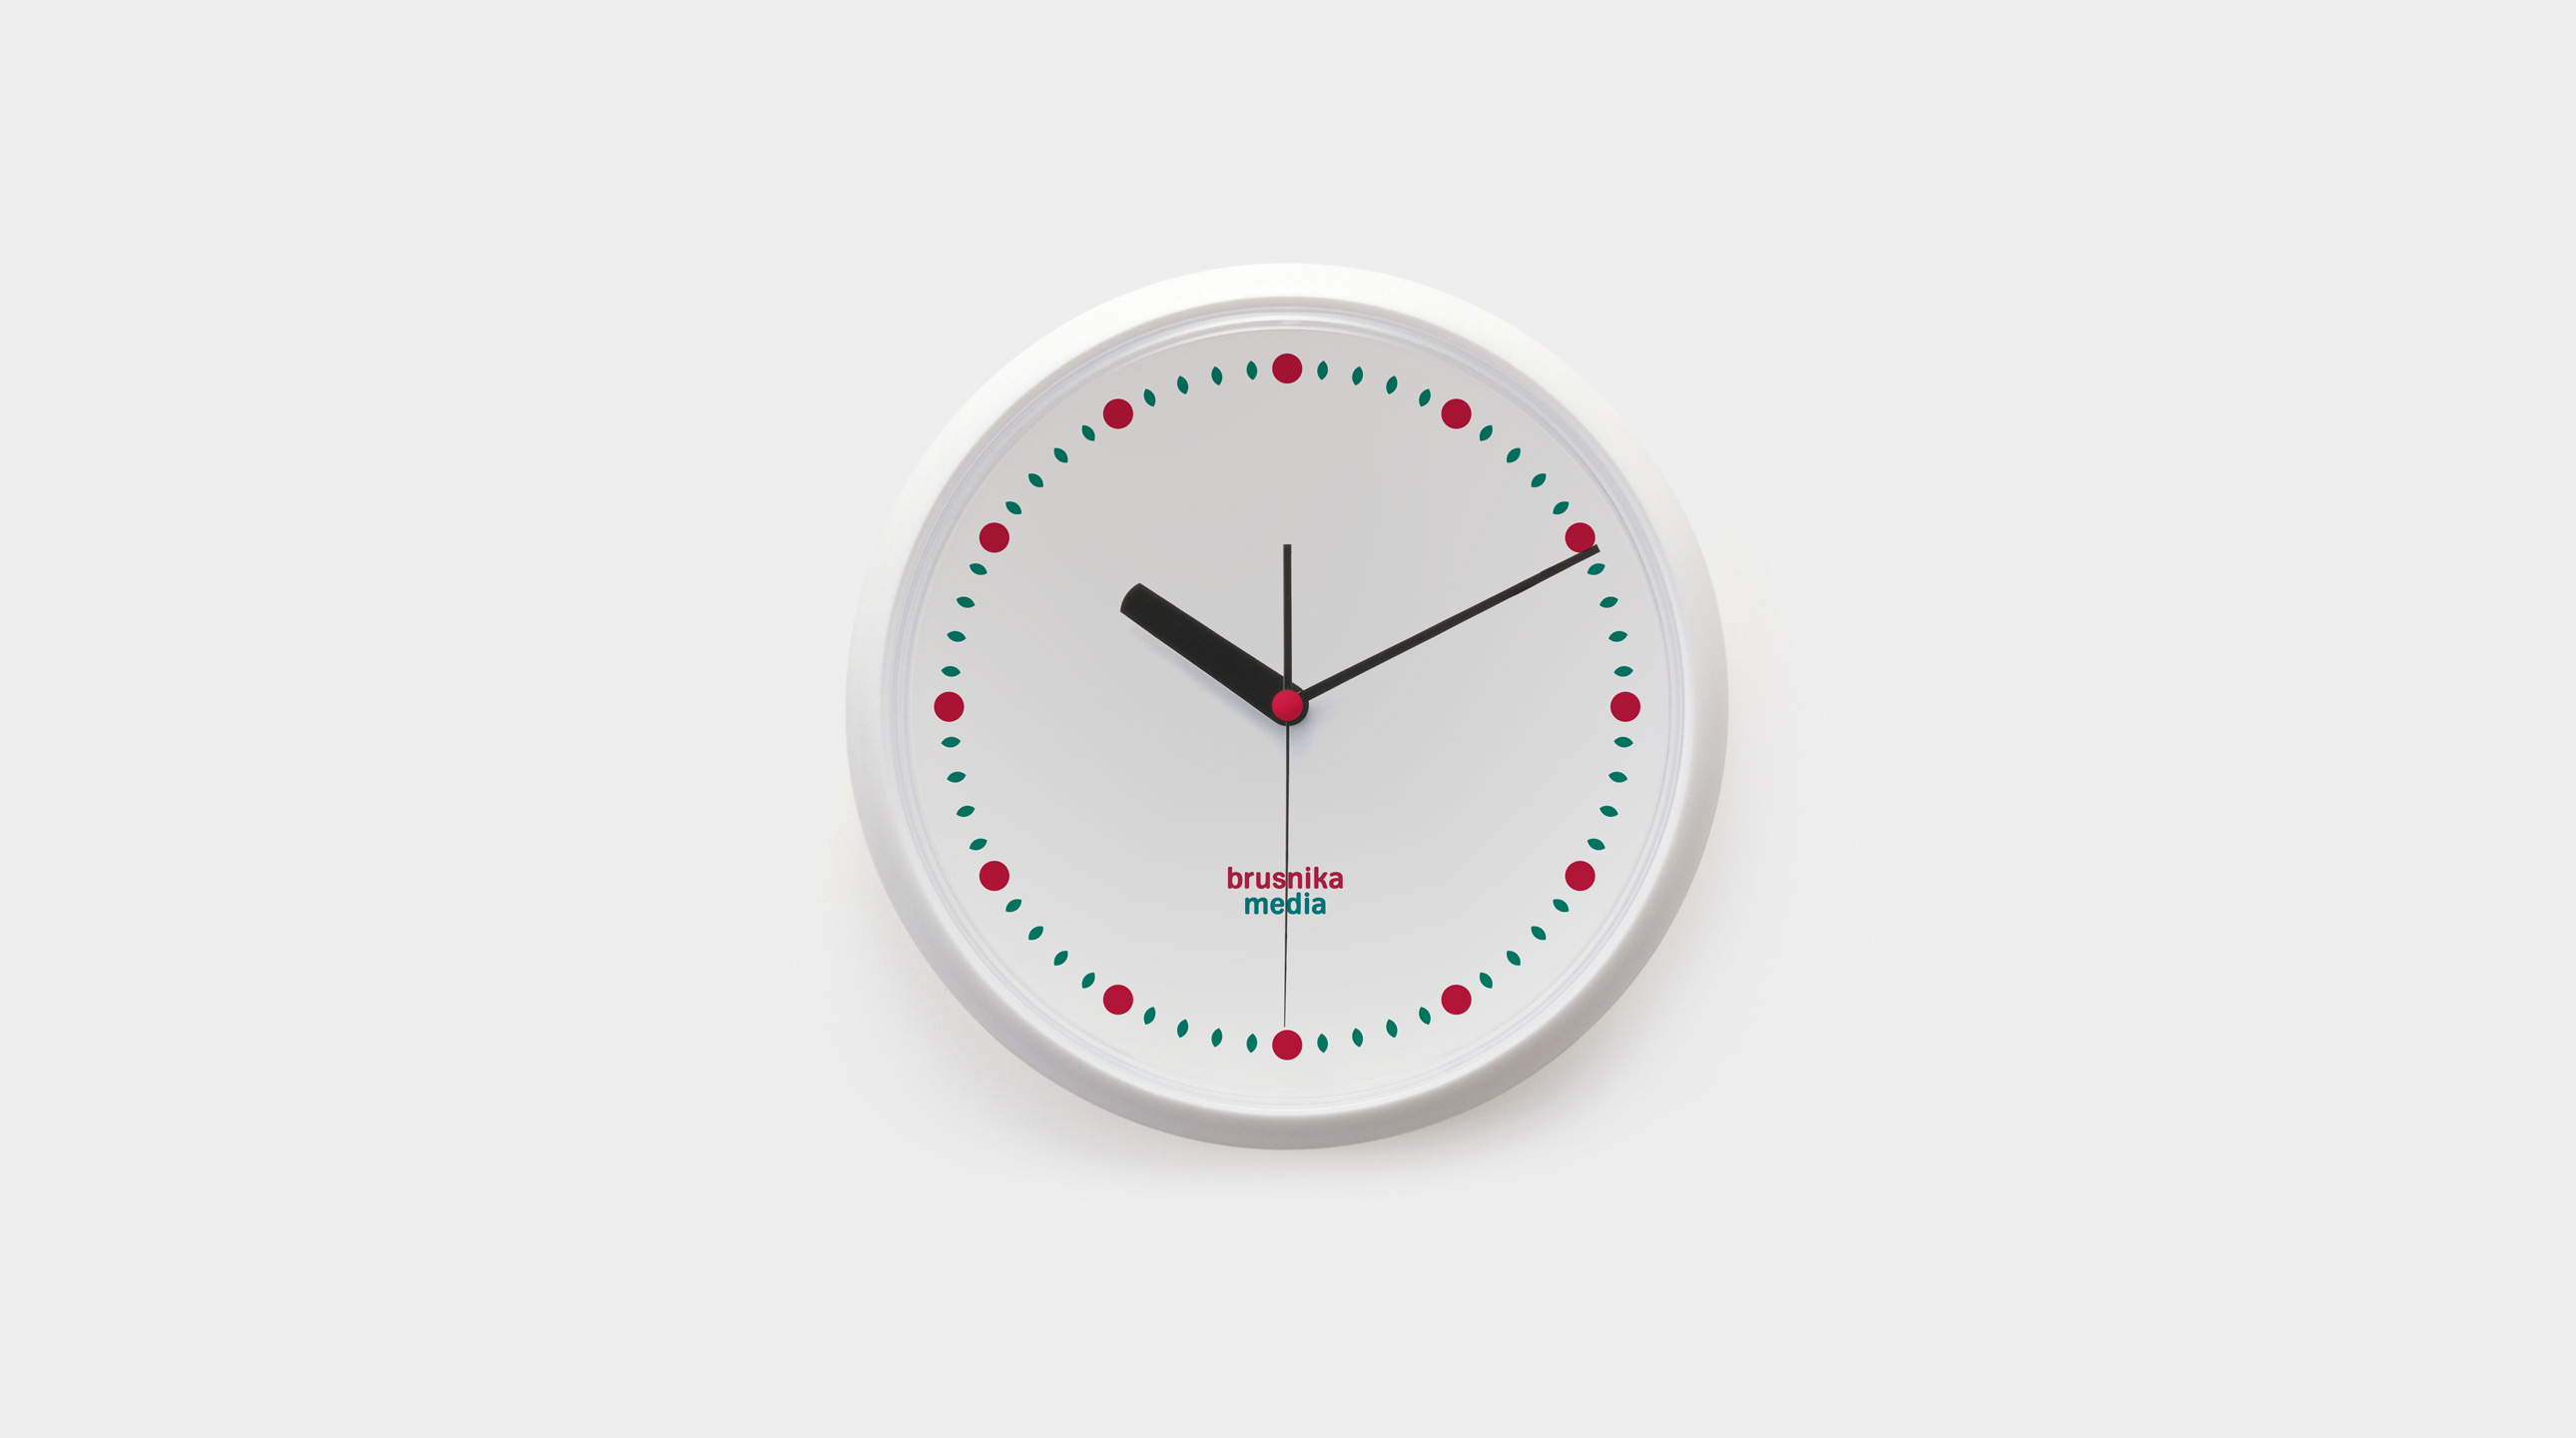 brusnika-media clock